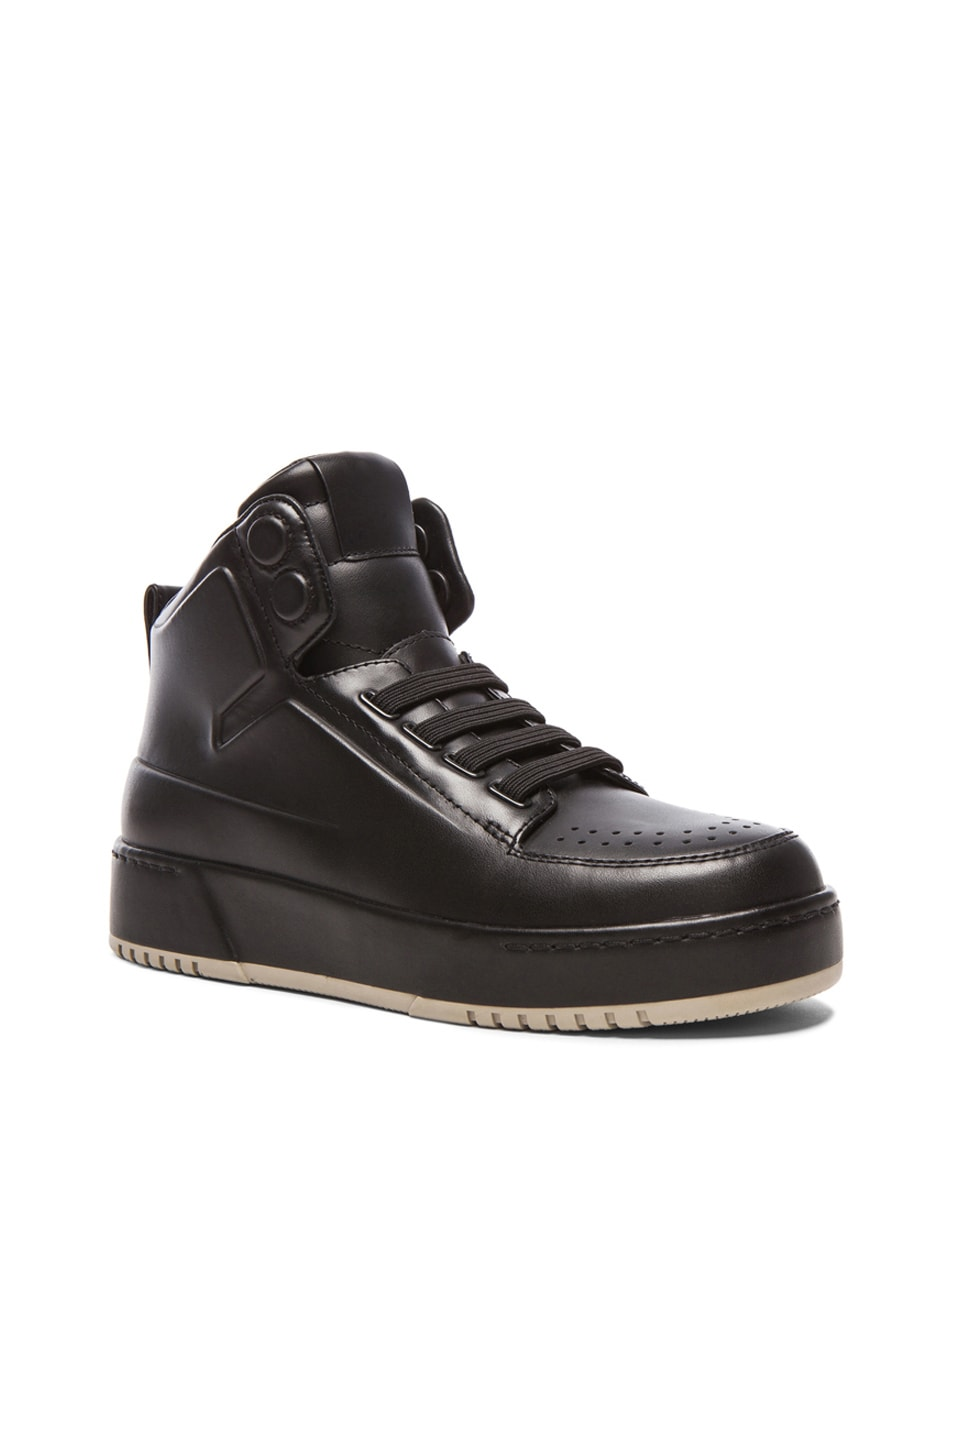 3 1 Phillip Lim Black PL31 Sneakers